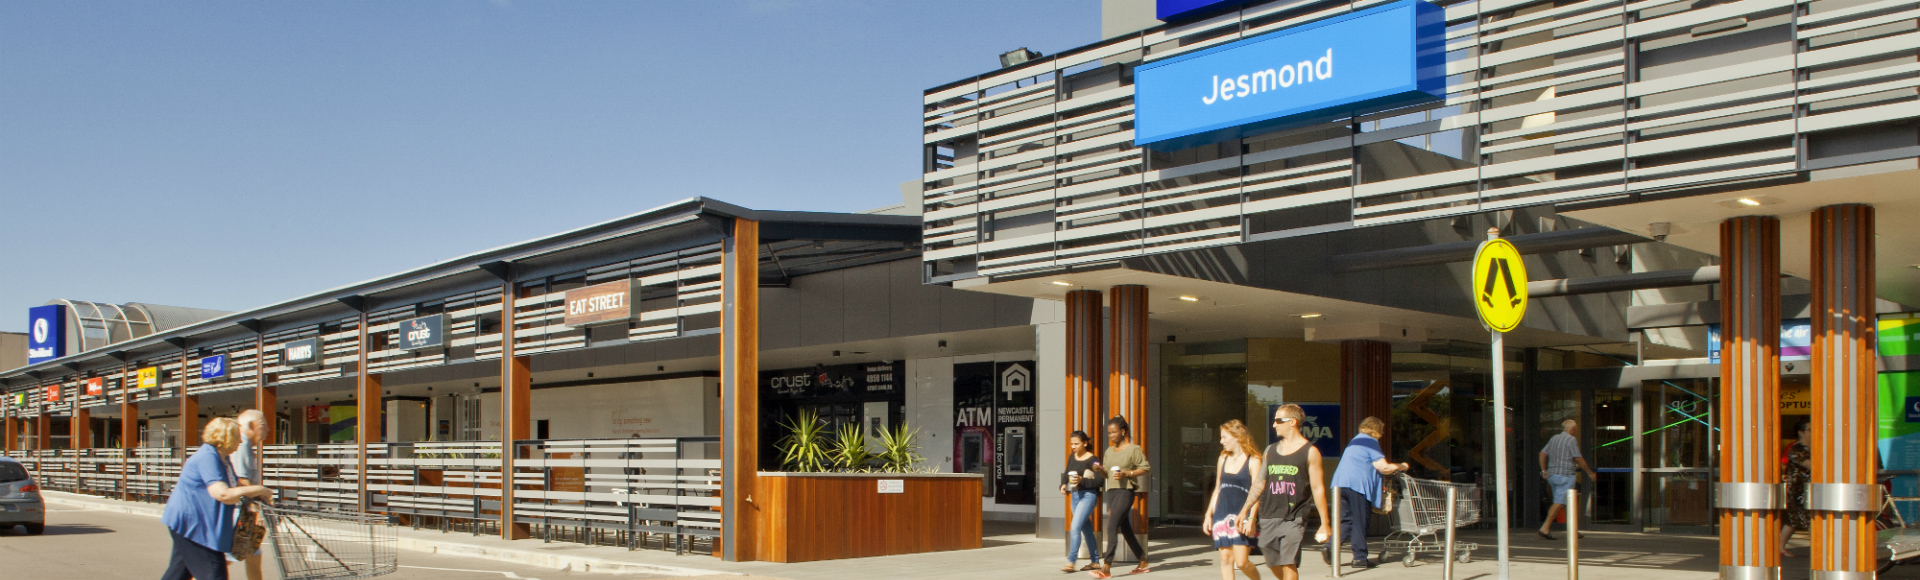 Jesmond Shopping Centre Main Entrance 1920x580px